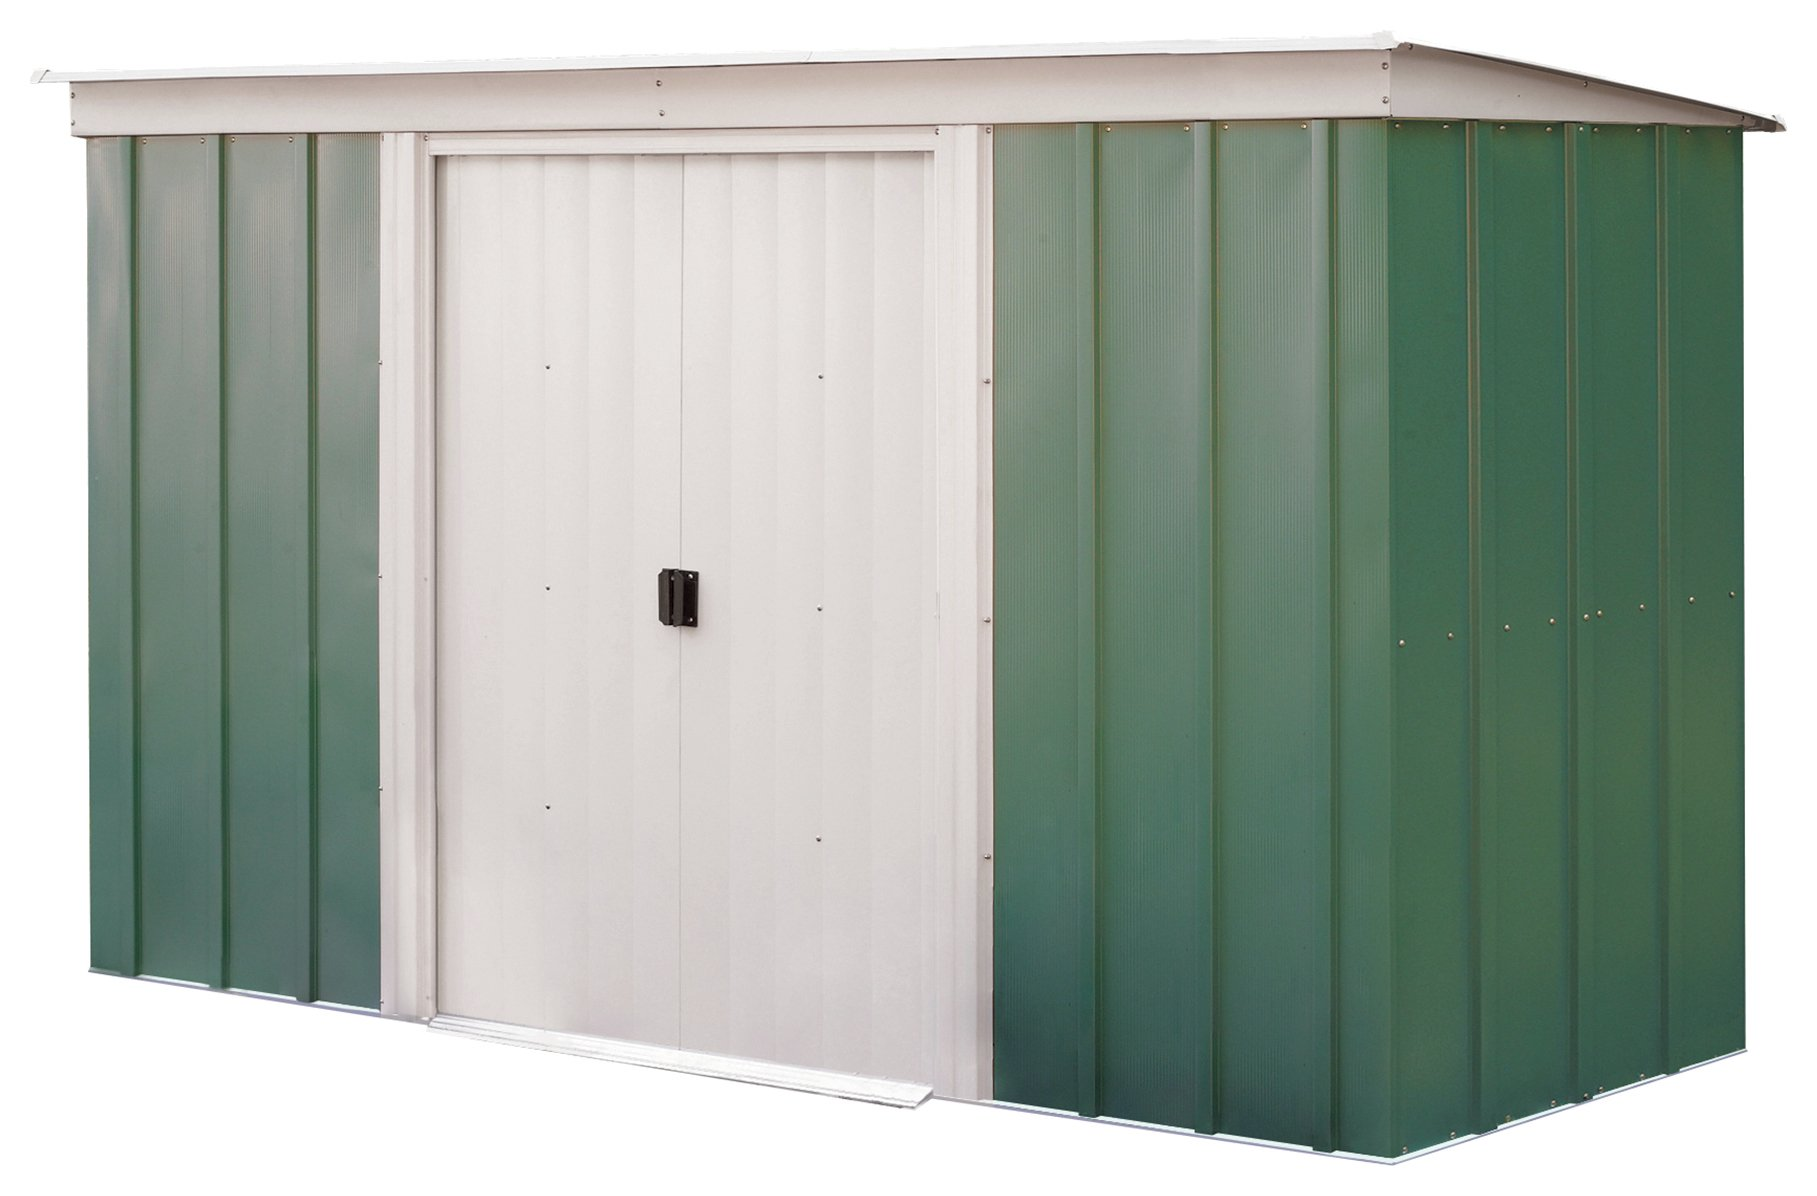 Arrow Metal Garden Shed - 10 x 4ft at Argos from Arrow